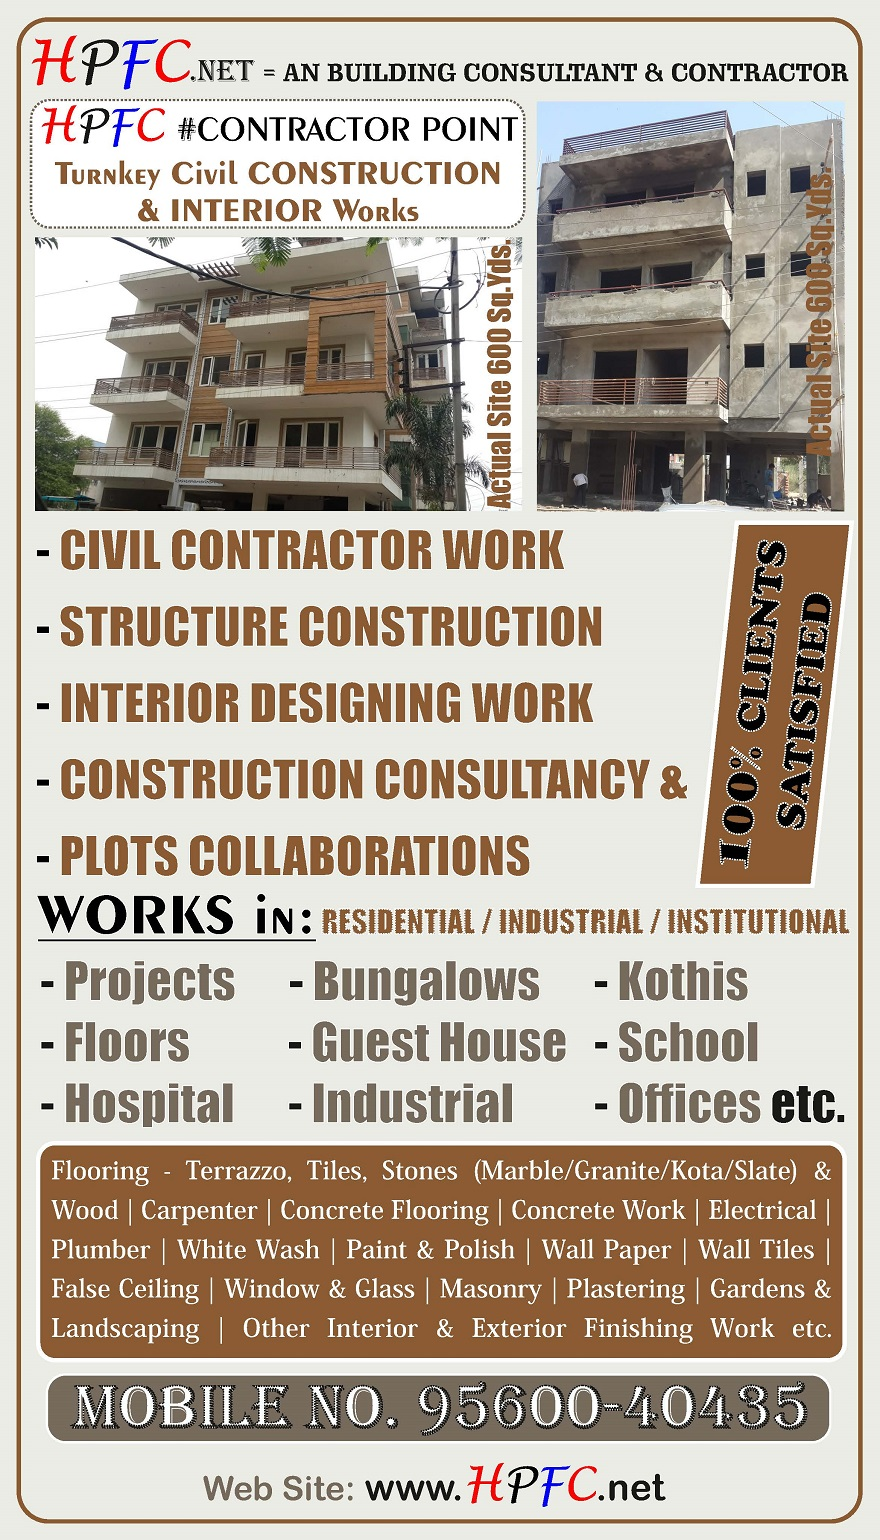 turnkey civil construction and interior works gurugram projects